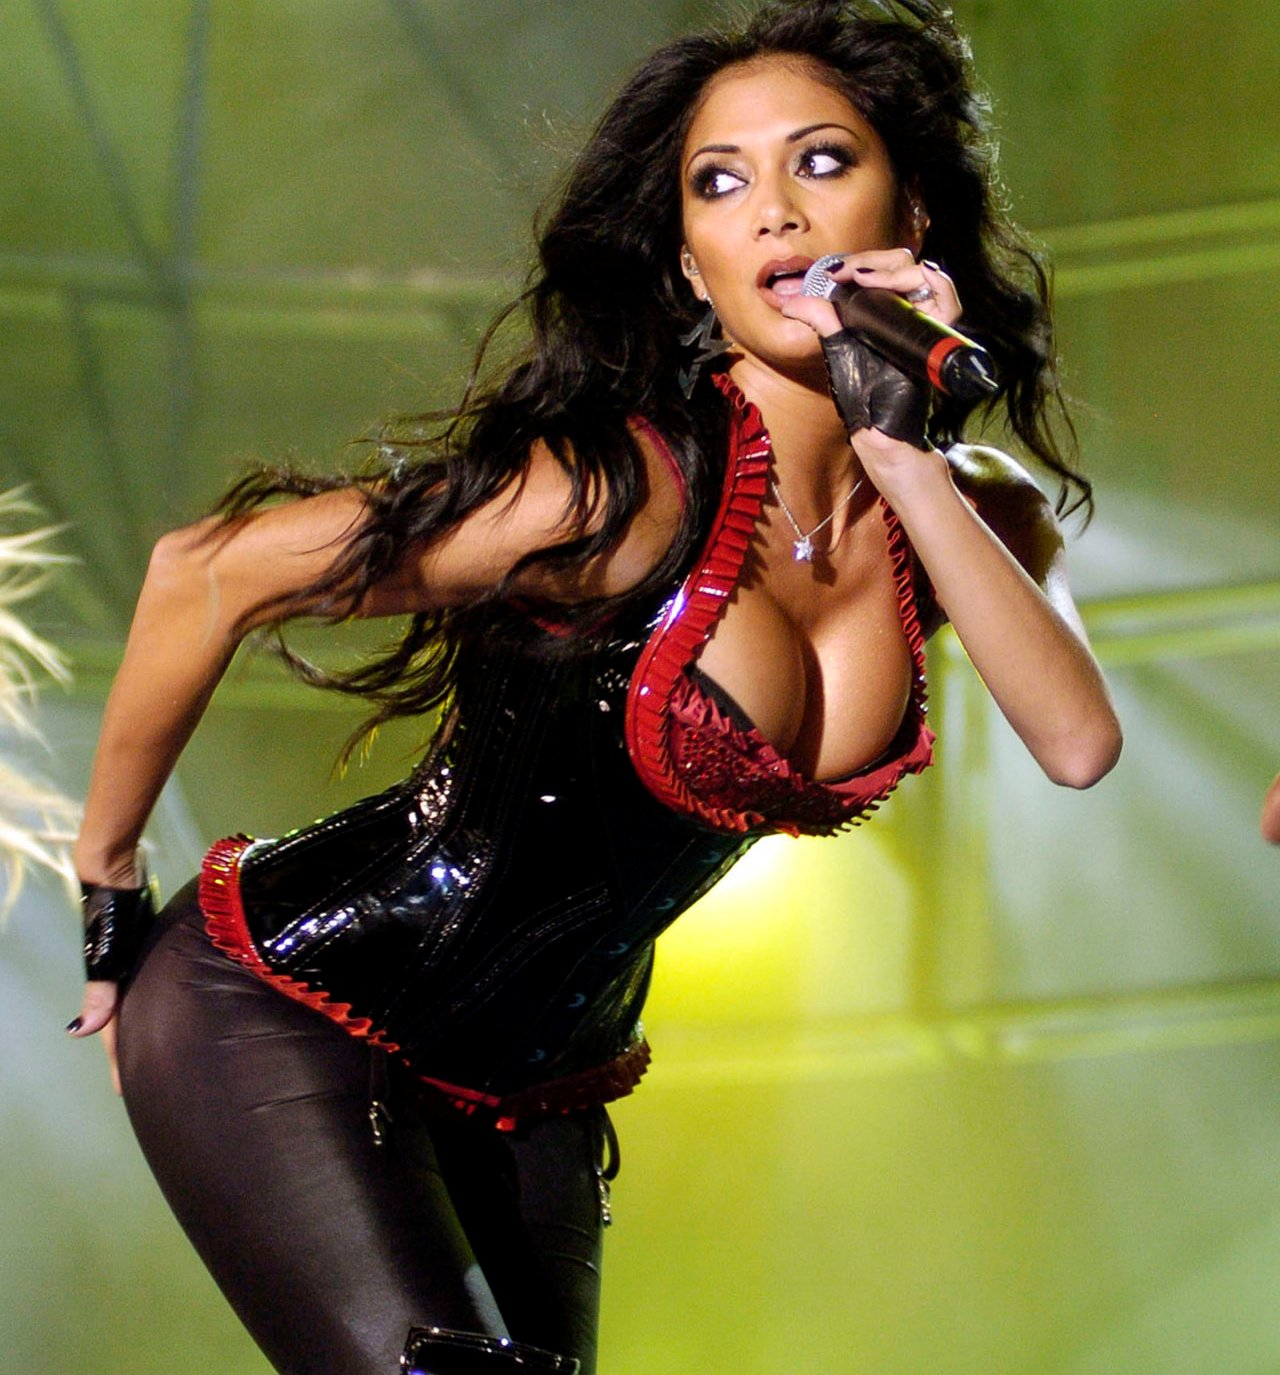 Actress Nicole Scherzinger Sweet Body